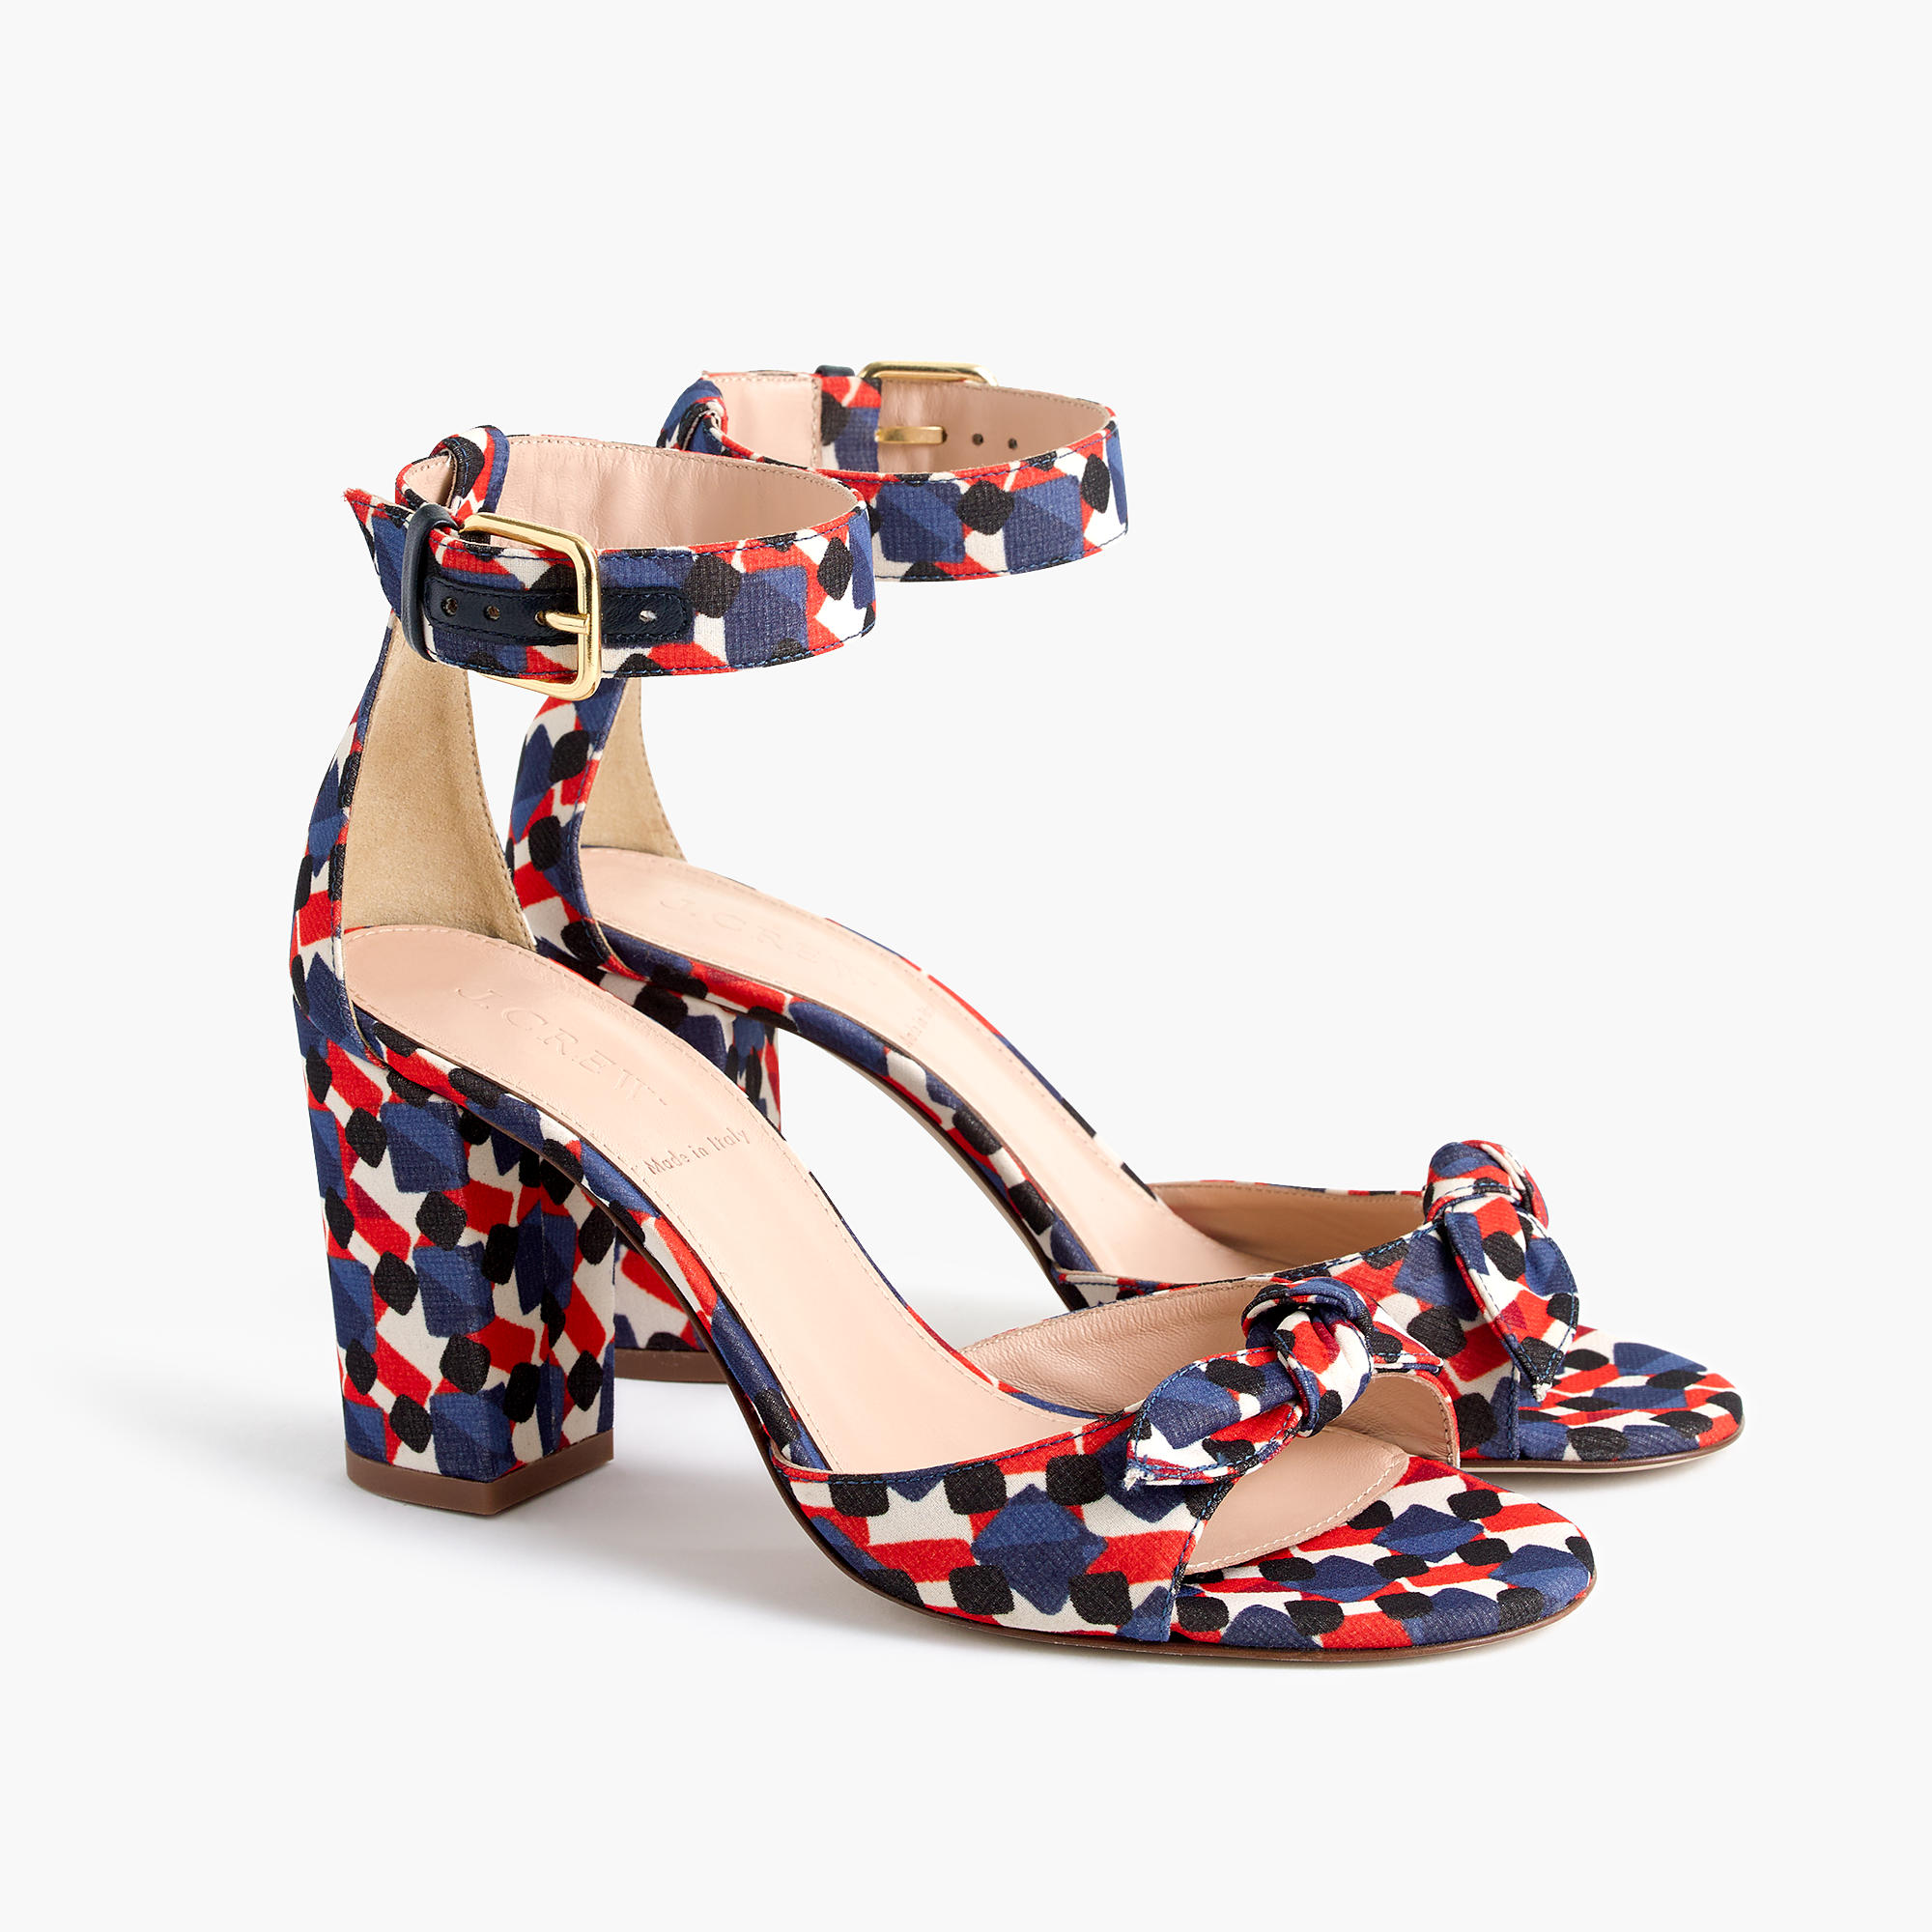 555a1c7f1d The 10 Prettiest Spring Shoes at J.Crew Right Now. Click through for the